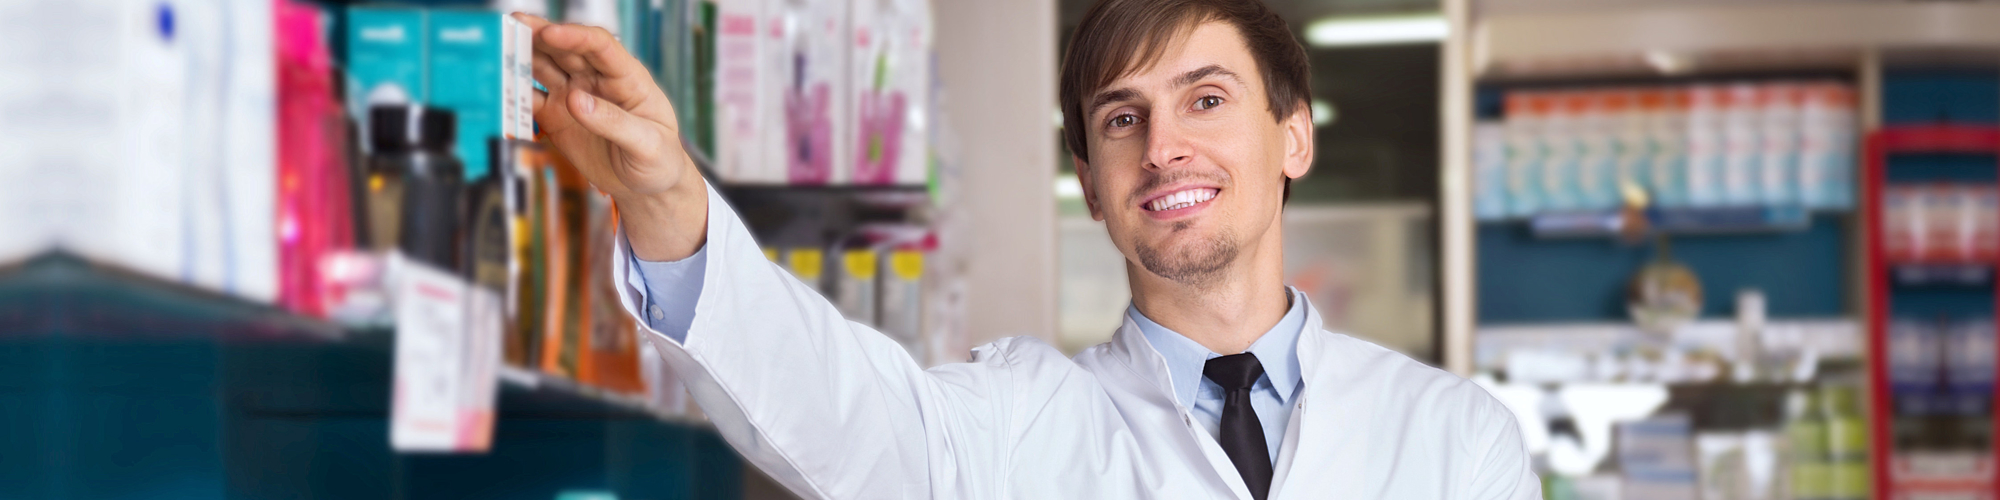 male doctor looking at camera while smiling